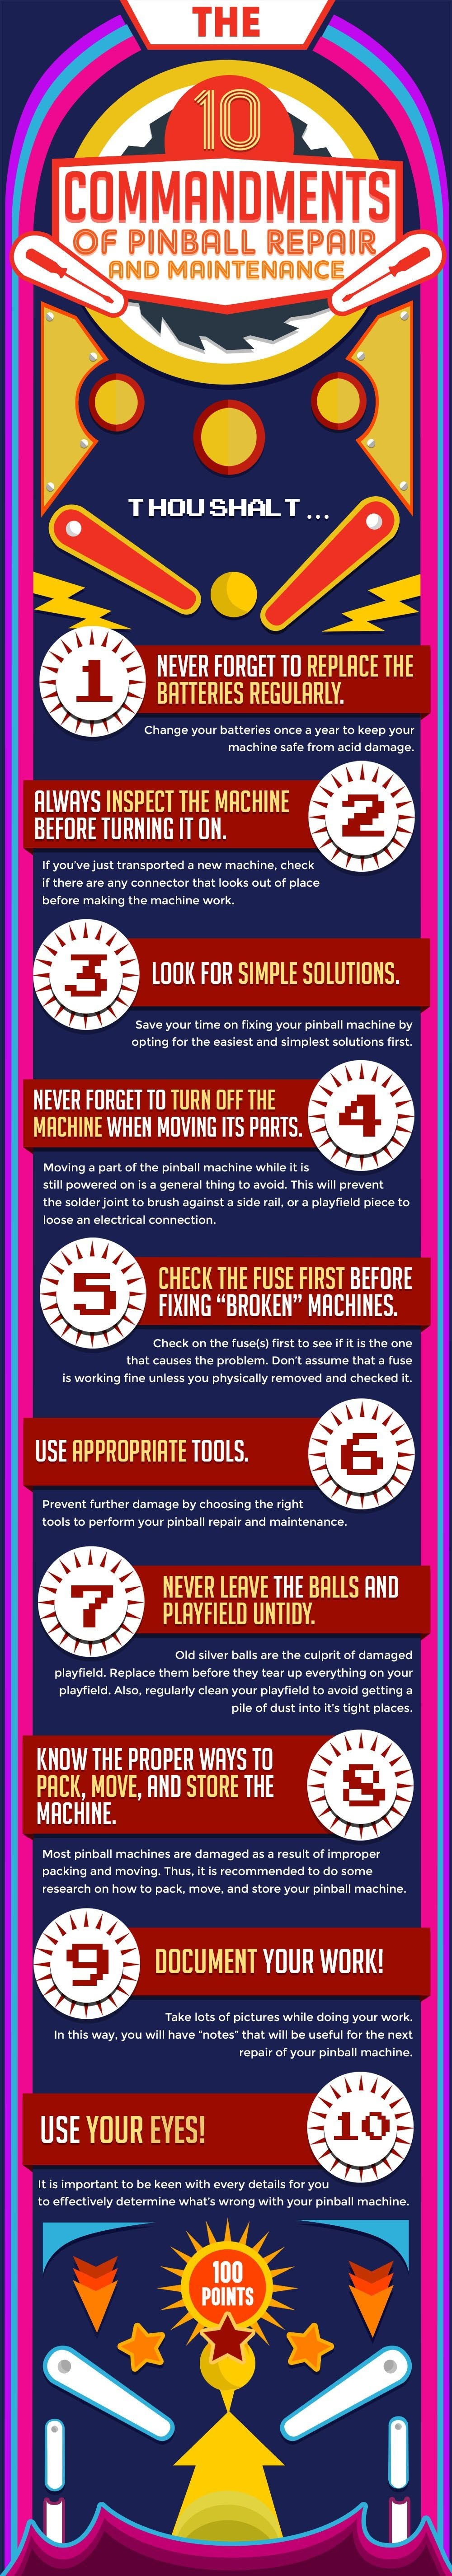 10 Commandments Of Pinball Repair And Maintenance #infographic